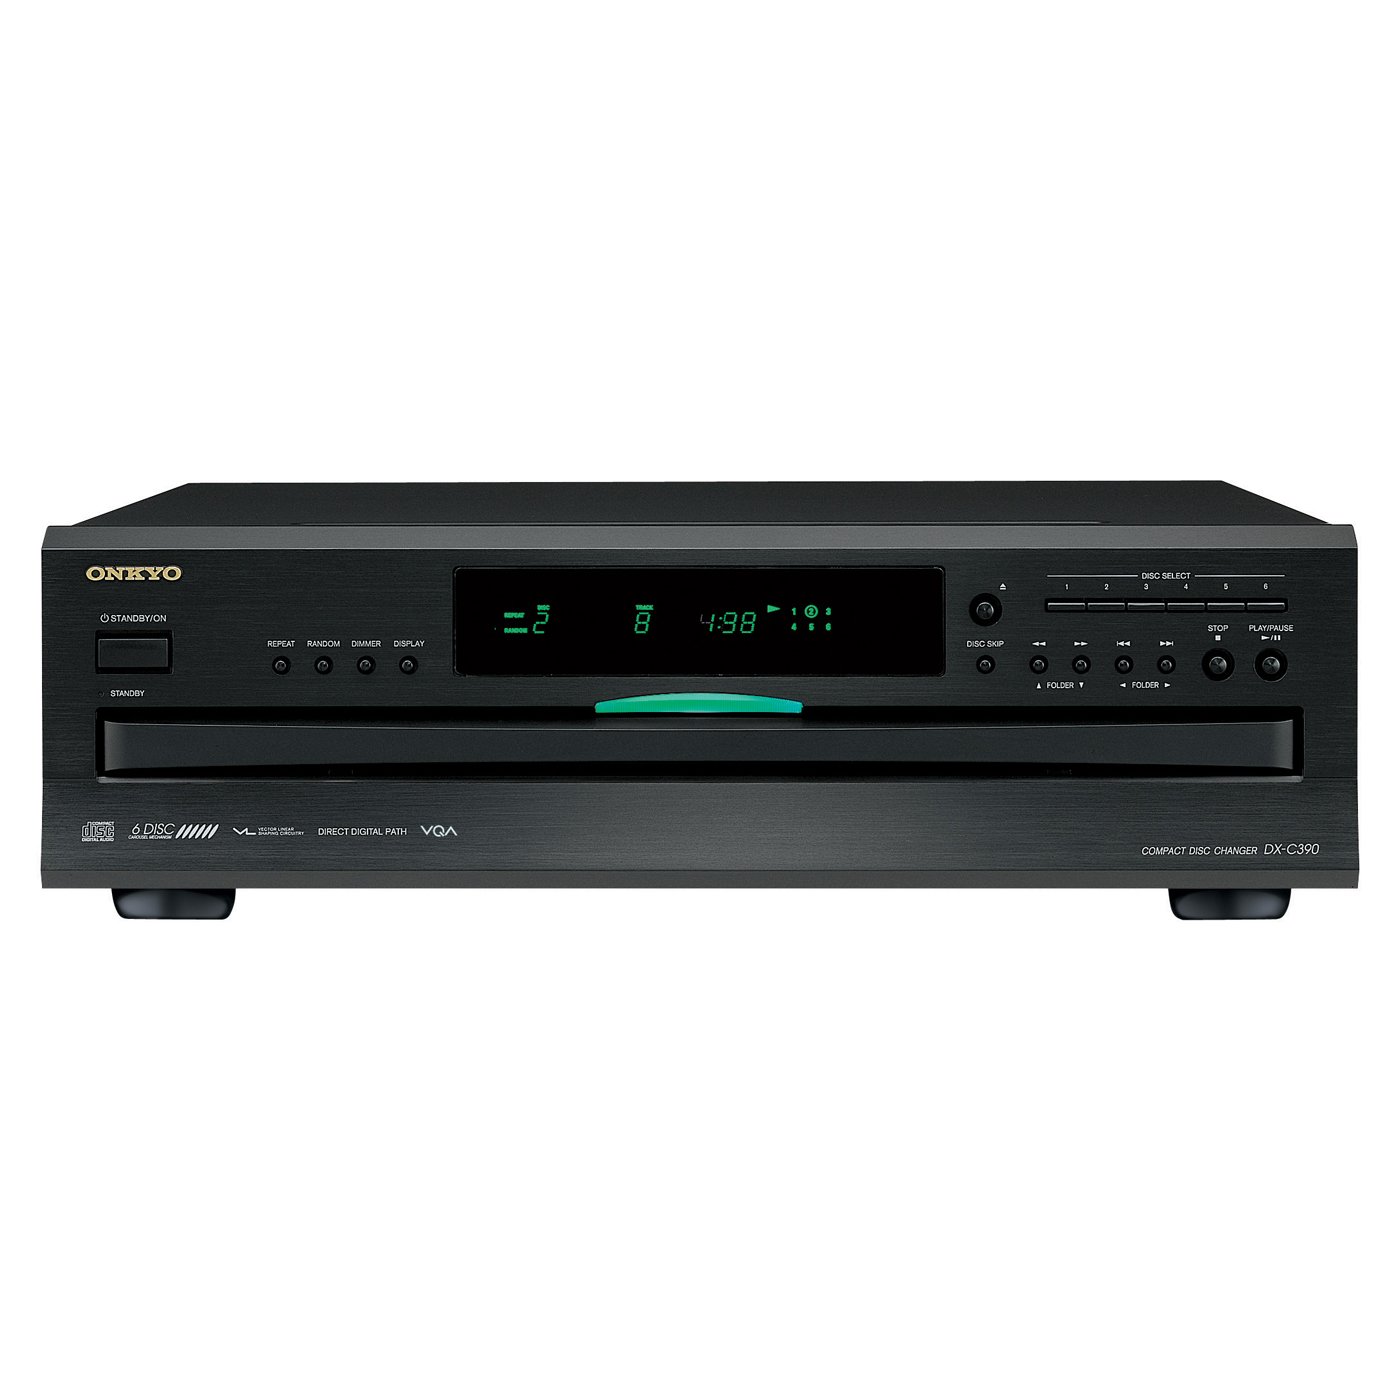 Onkyo DXC390 6 Disc CD Player (Additional Components Needed For CD Functionality) by Onkyo